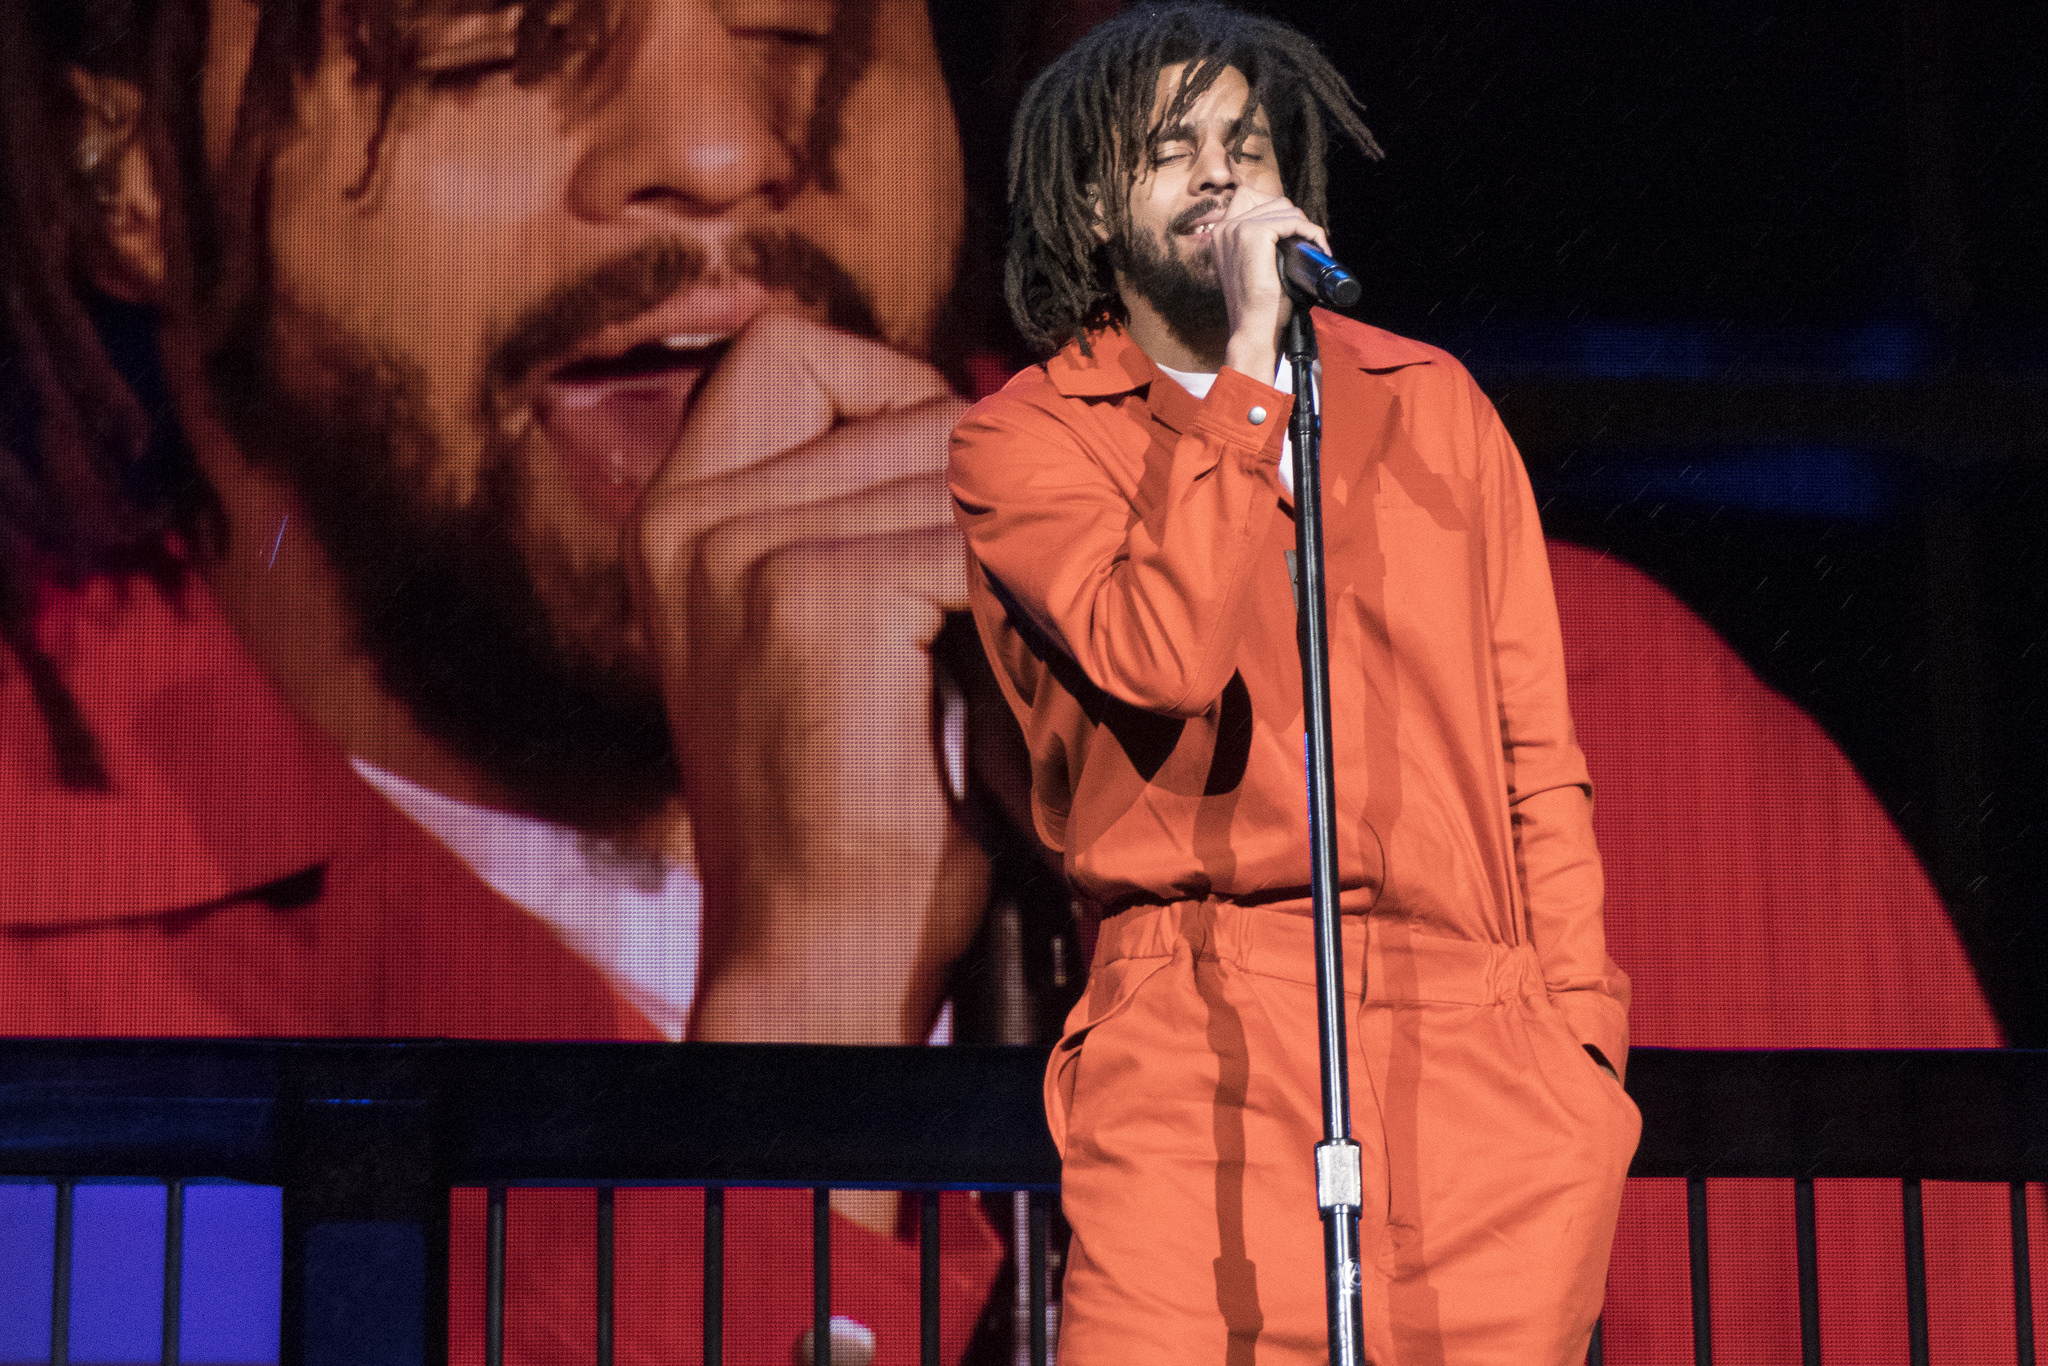 J. Cole Tells Fans to 'Come Through' to Mysterious NYC Event Tonight